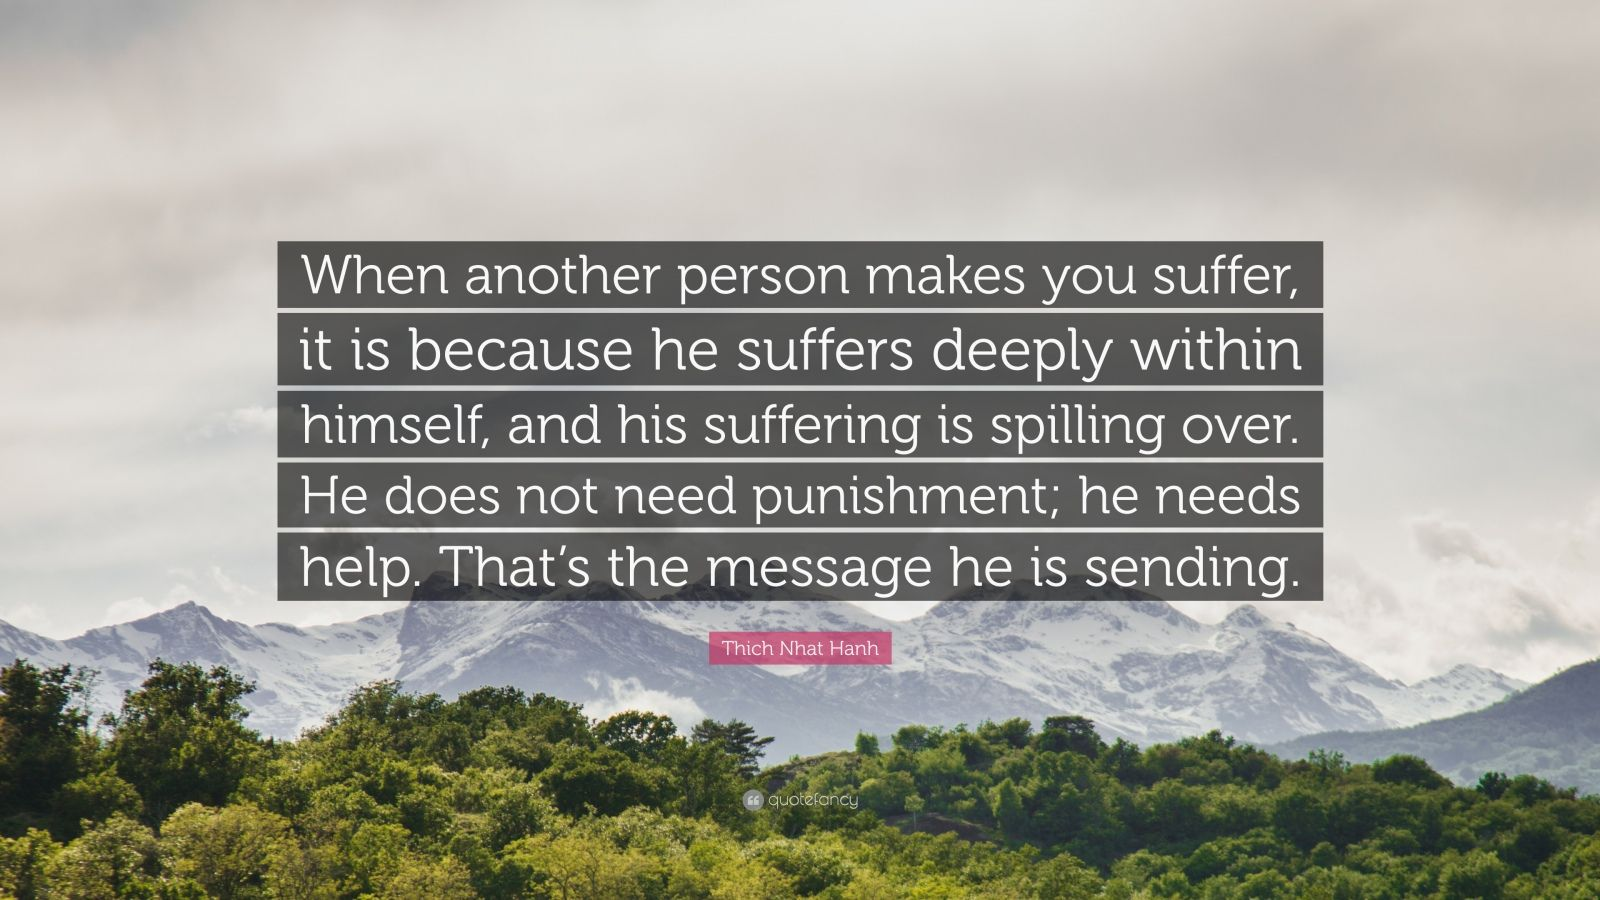 """Thich Nhat Hanh Quote: """"When another person makes you suffer, it is because he suffers deeply within himself, and his suffering is spilling over. He does not need punishment; he needs help. That's the message he is sending."""""""